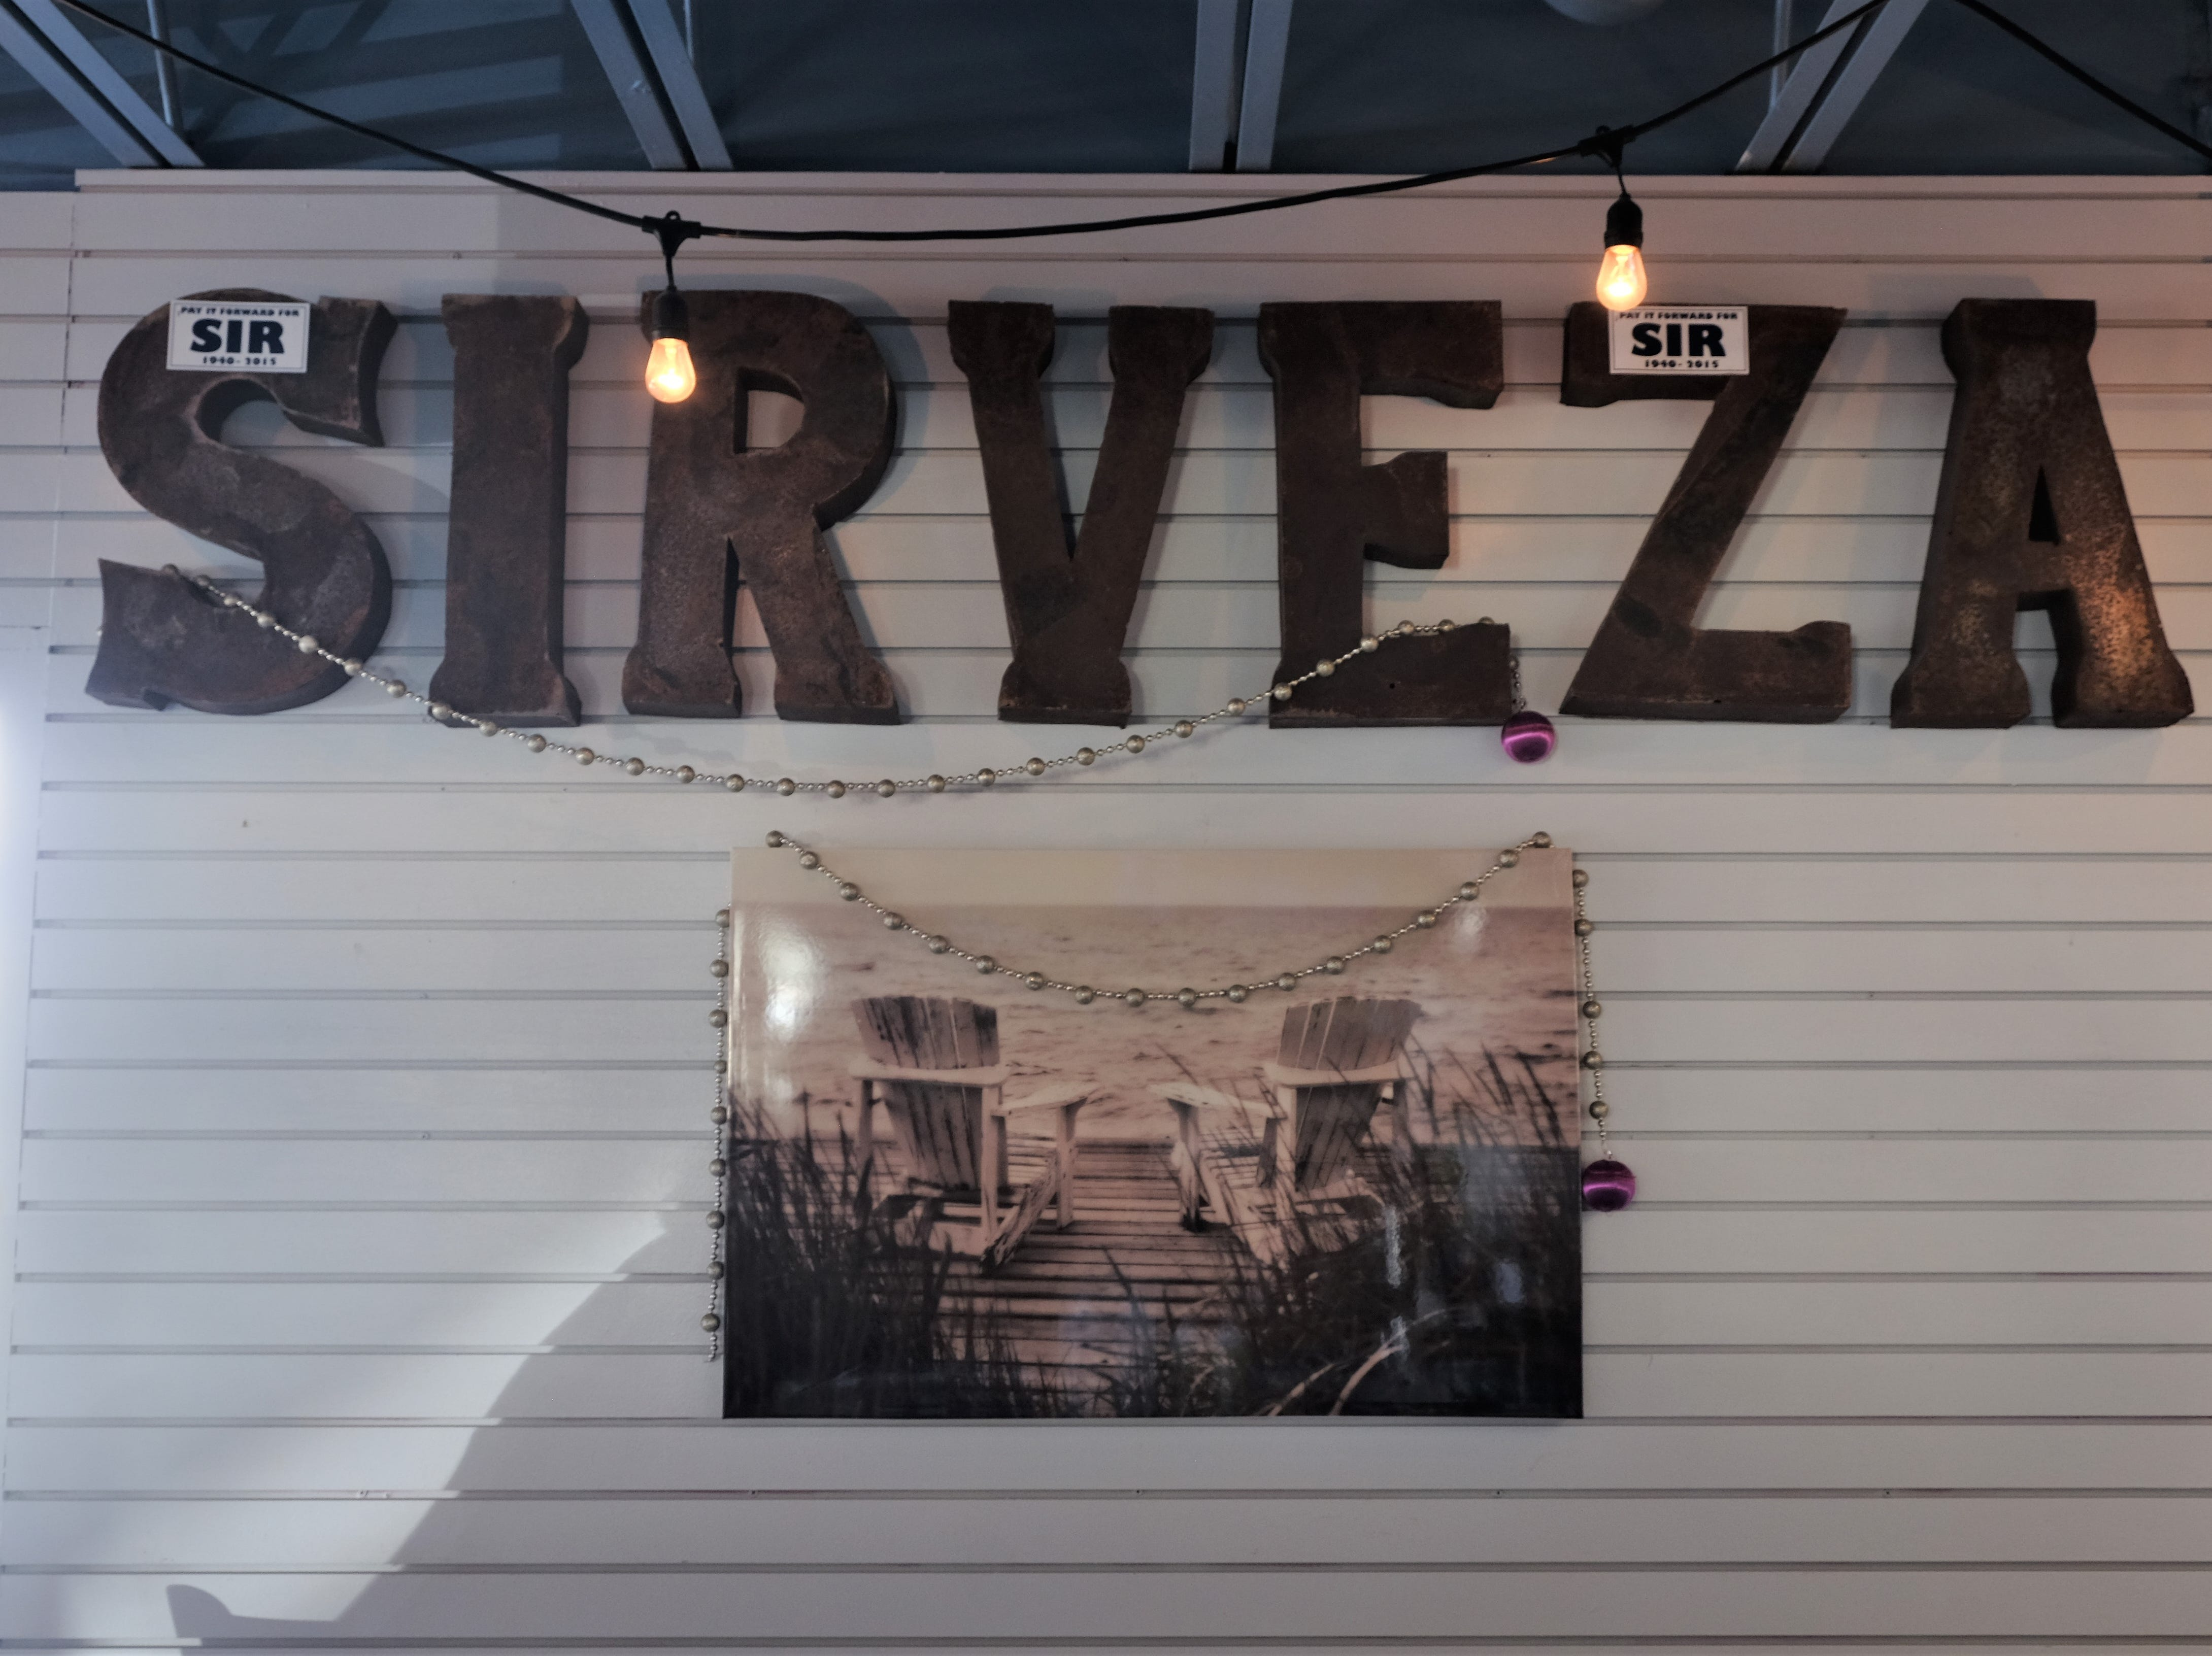 Sirveza opened its doors in late July and plans to bust out fresh Mexican food year-round in Dewey Beach.